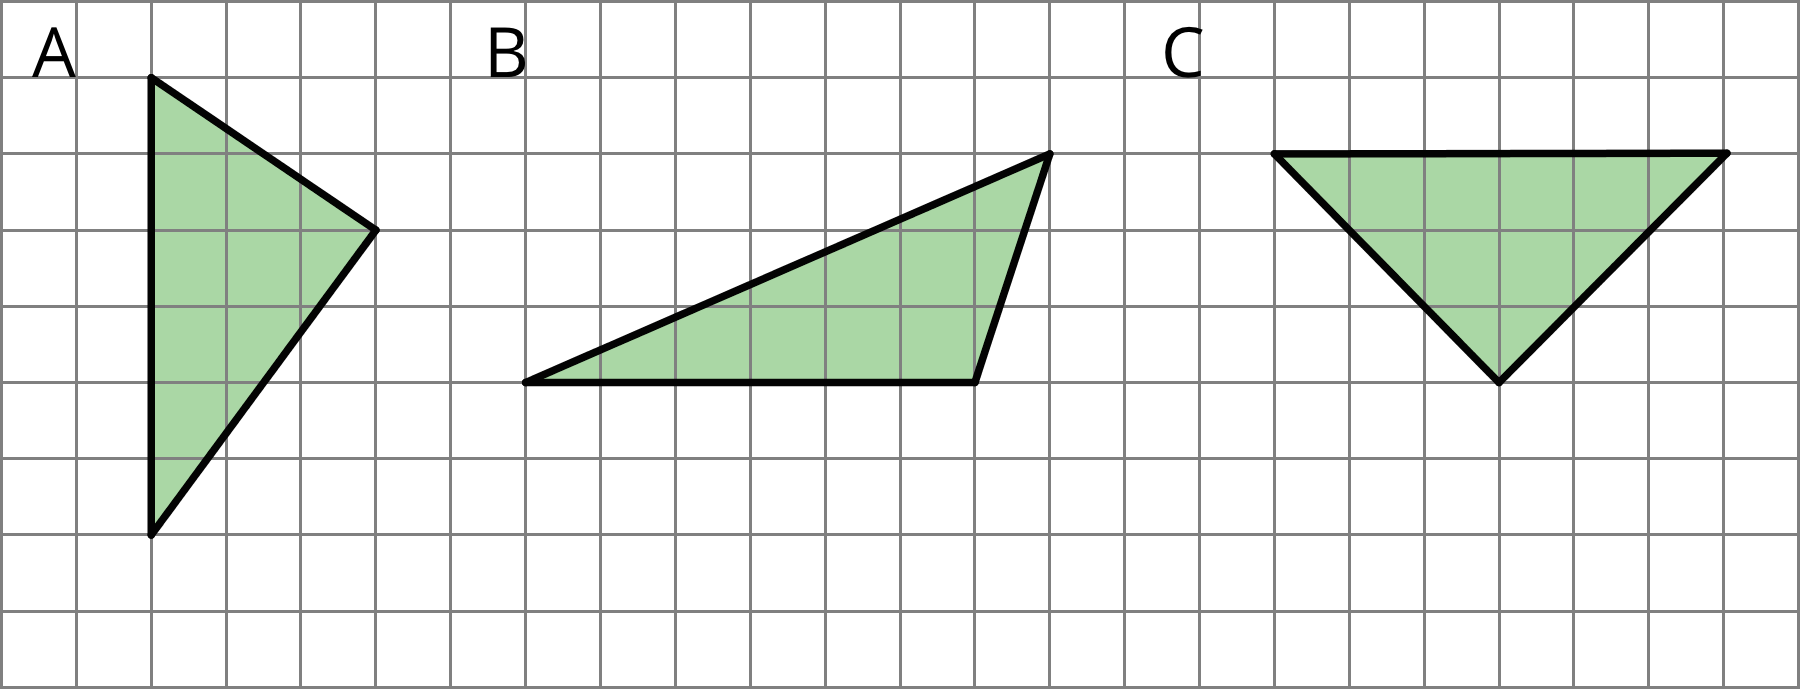 Three triangles labeled A, B, and, C. Each triangle has a bas of 6 units and a height of 3 units.